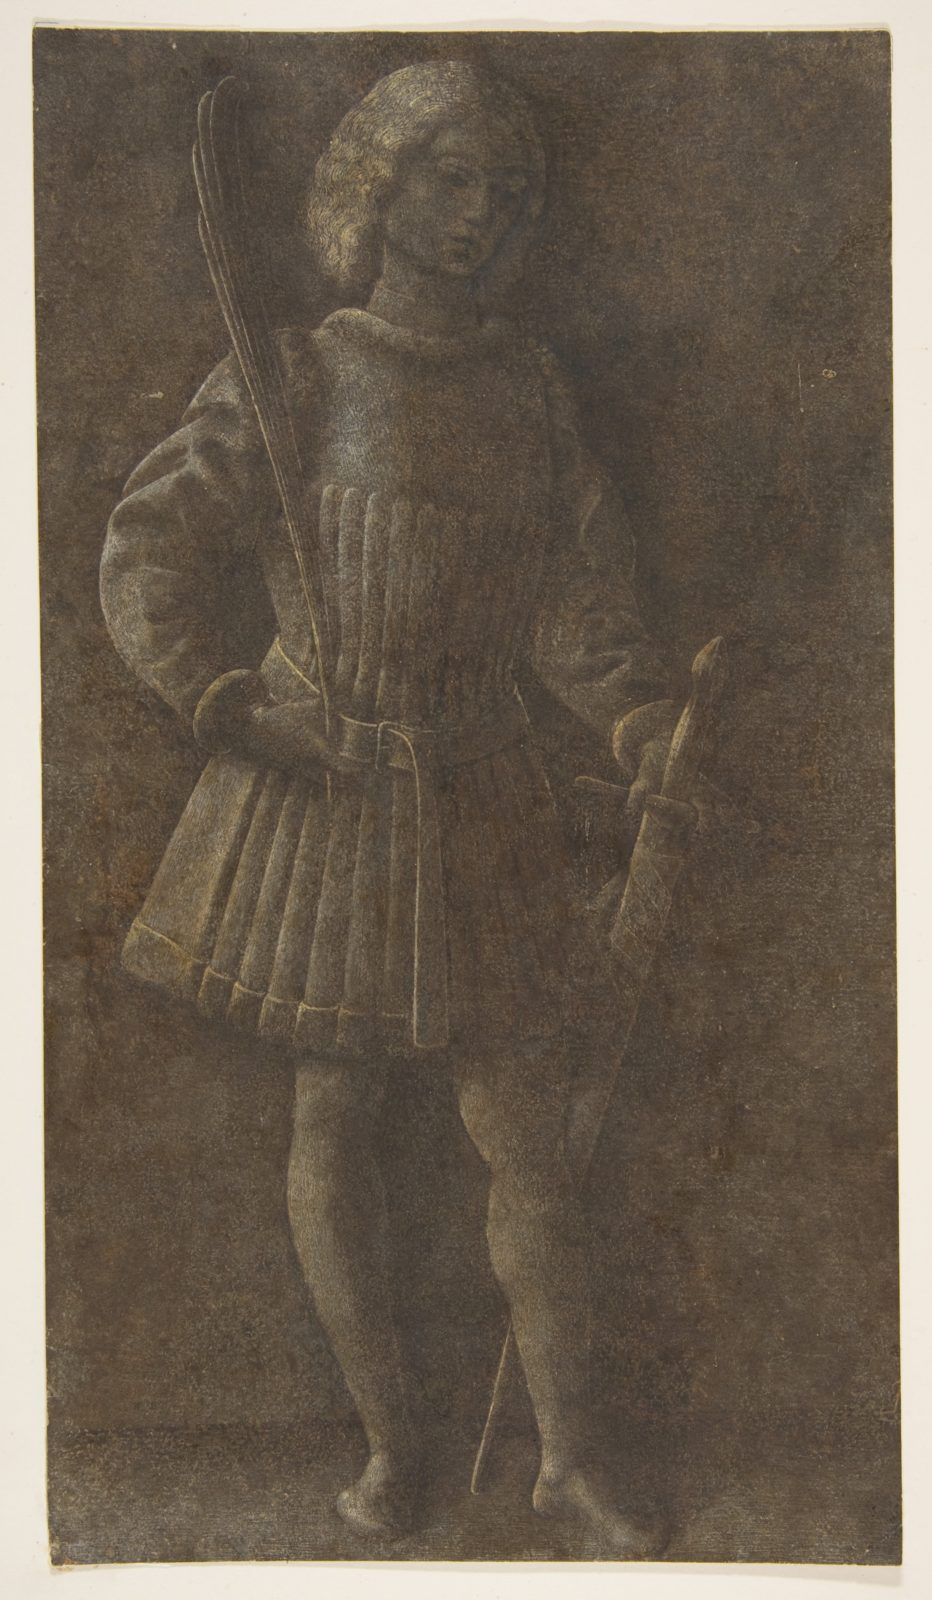 Standing Youth with Sword and Palm Branch